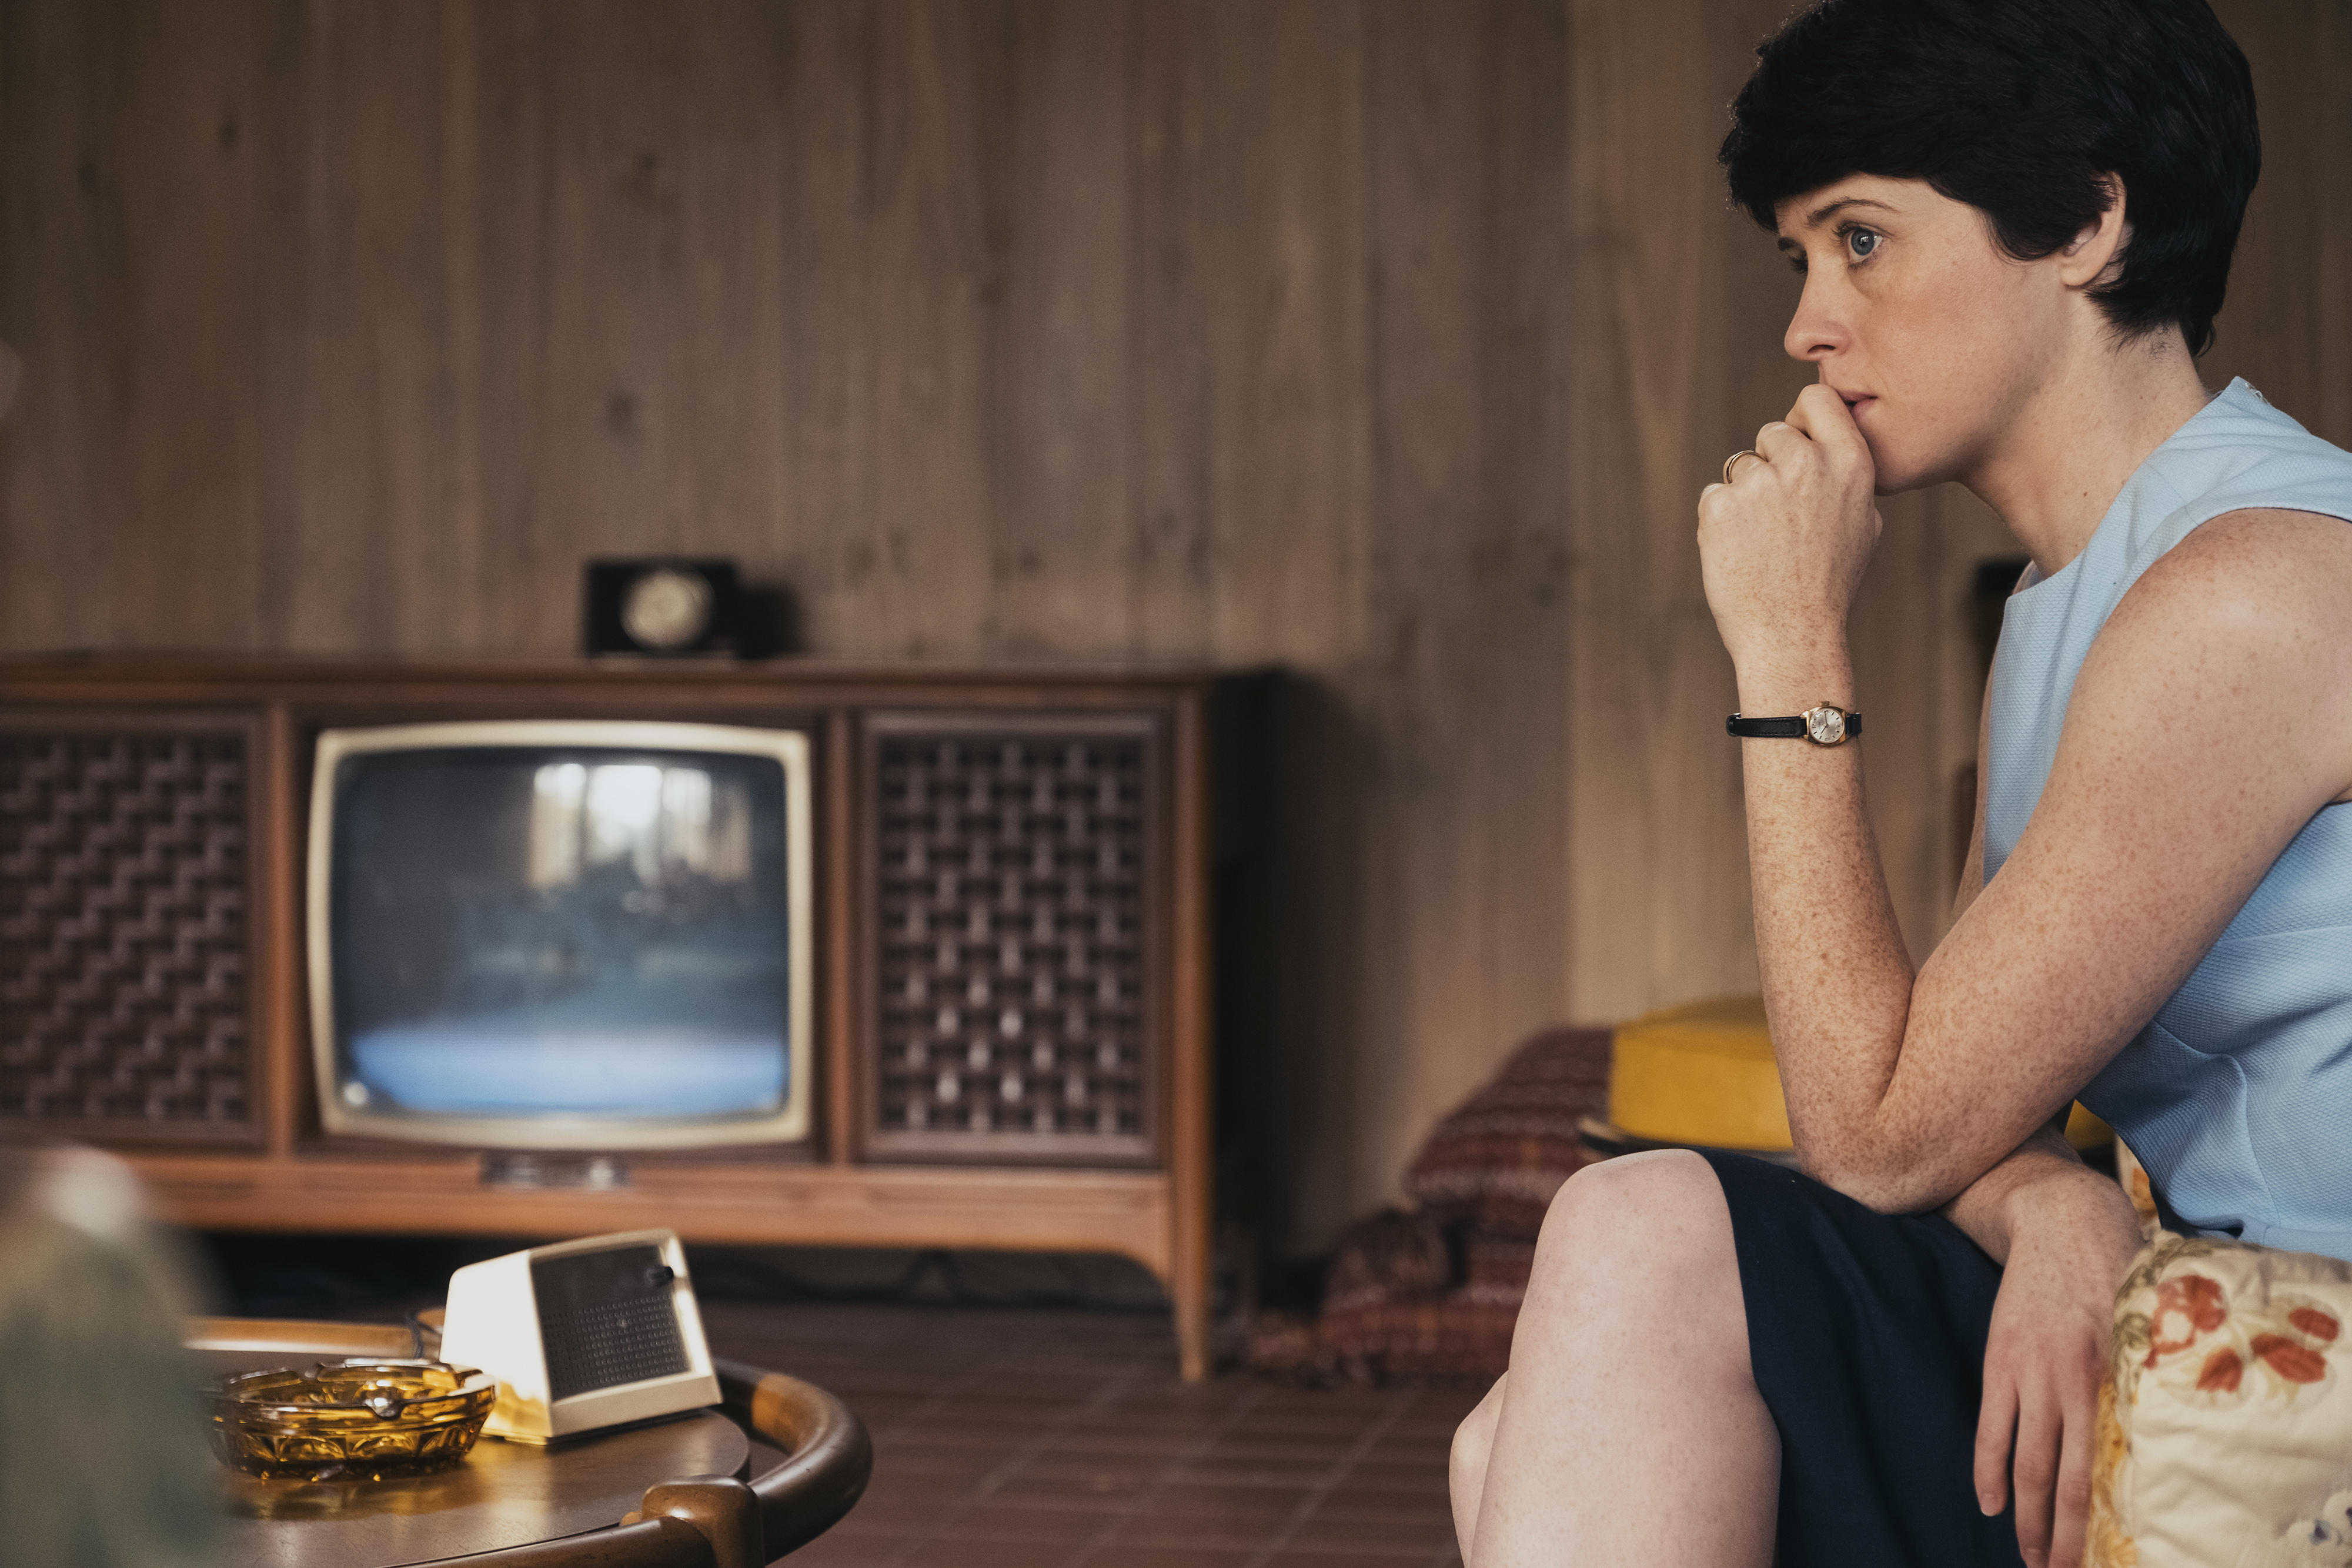 first-man-claire-foy-tv